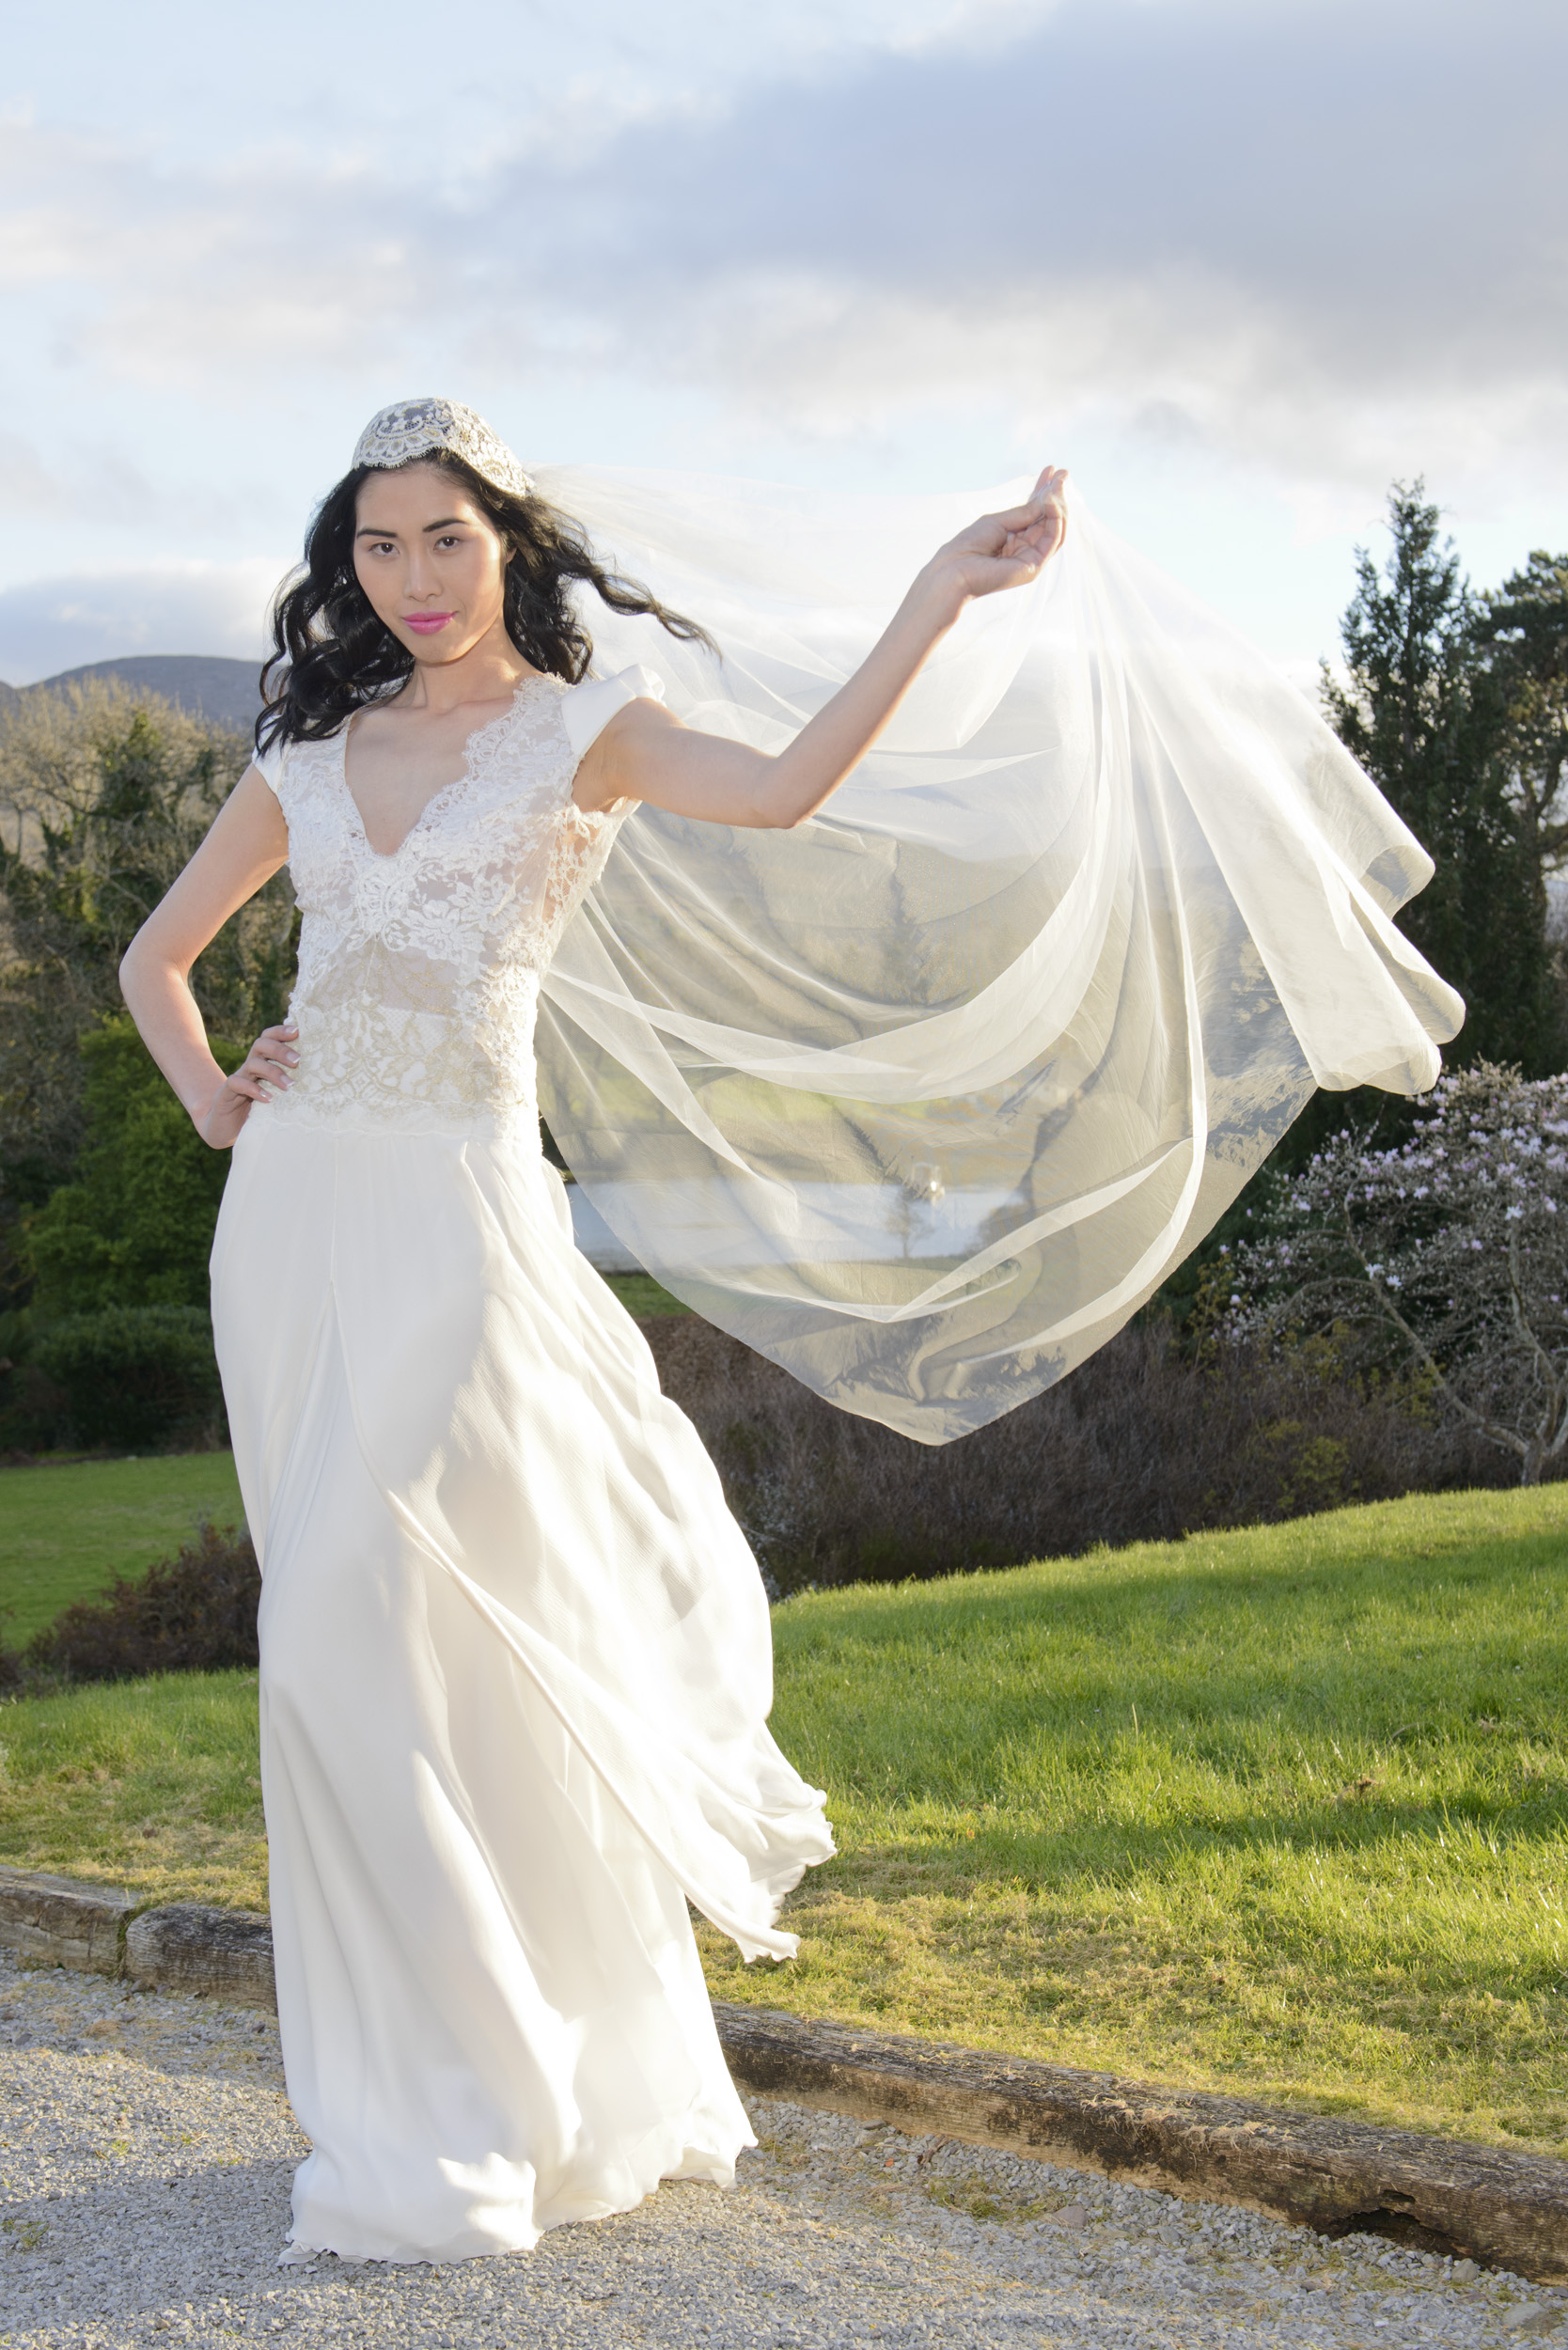 Kenmare Lace Festival - We produced the fashion show at the prestigious Kenmare Lace Festival in the Park Hotel Kenmare.